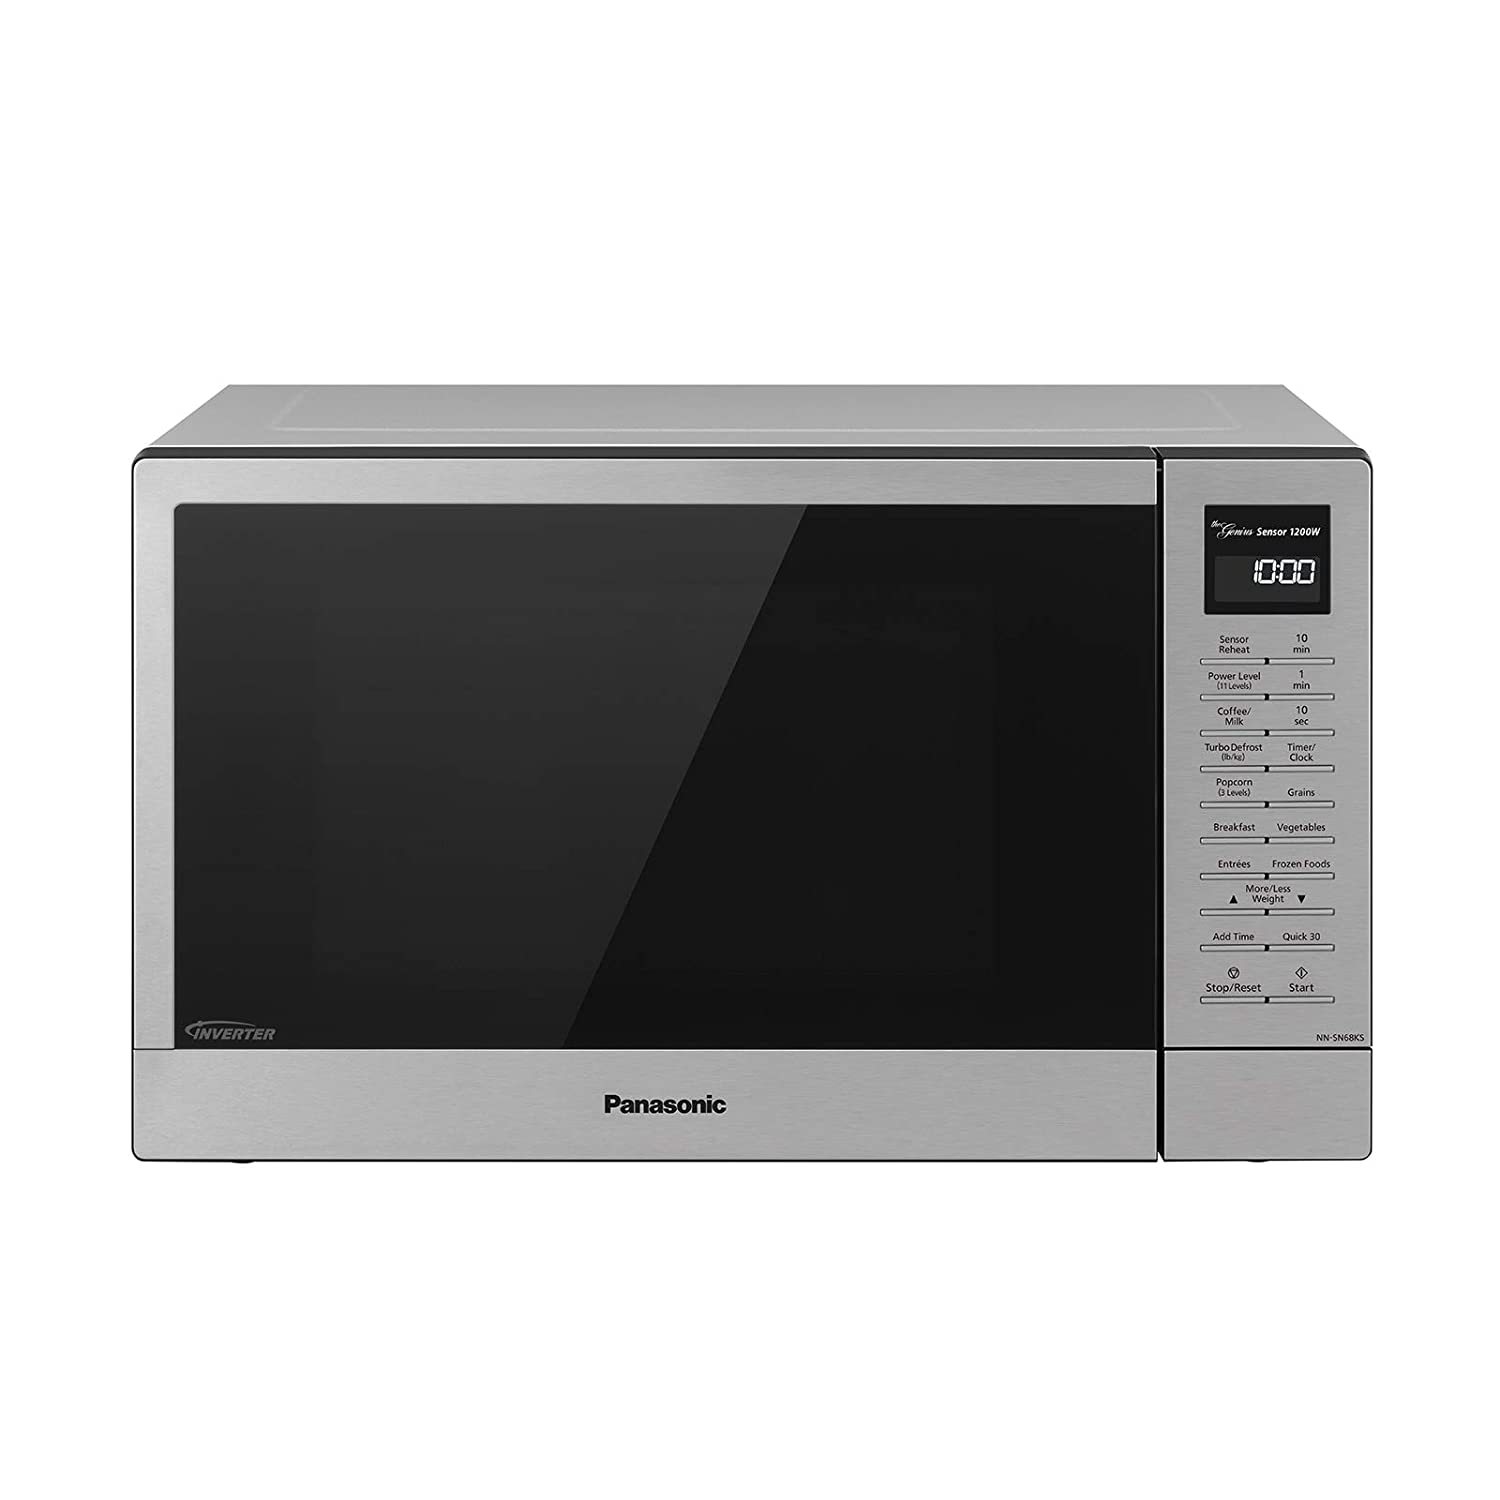 Panasonic Compact Microwave Oven with 1200 Watts of Cooking Power, Sensor Cooking, Popcorn Button, Quick 30sec and Turbo Defrost - NN-SN68KS - 1.2 cu. ft (Stainless Steel / Silver)